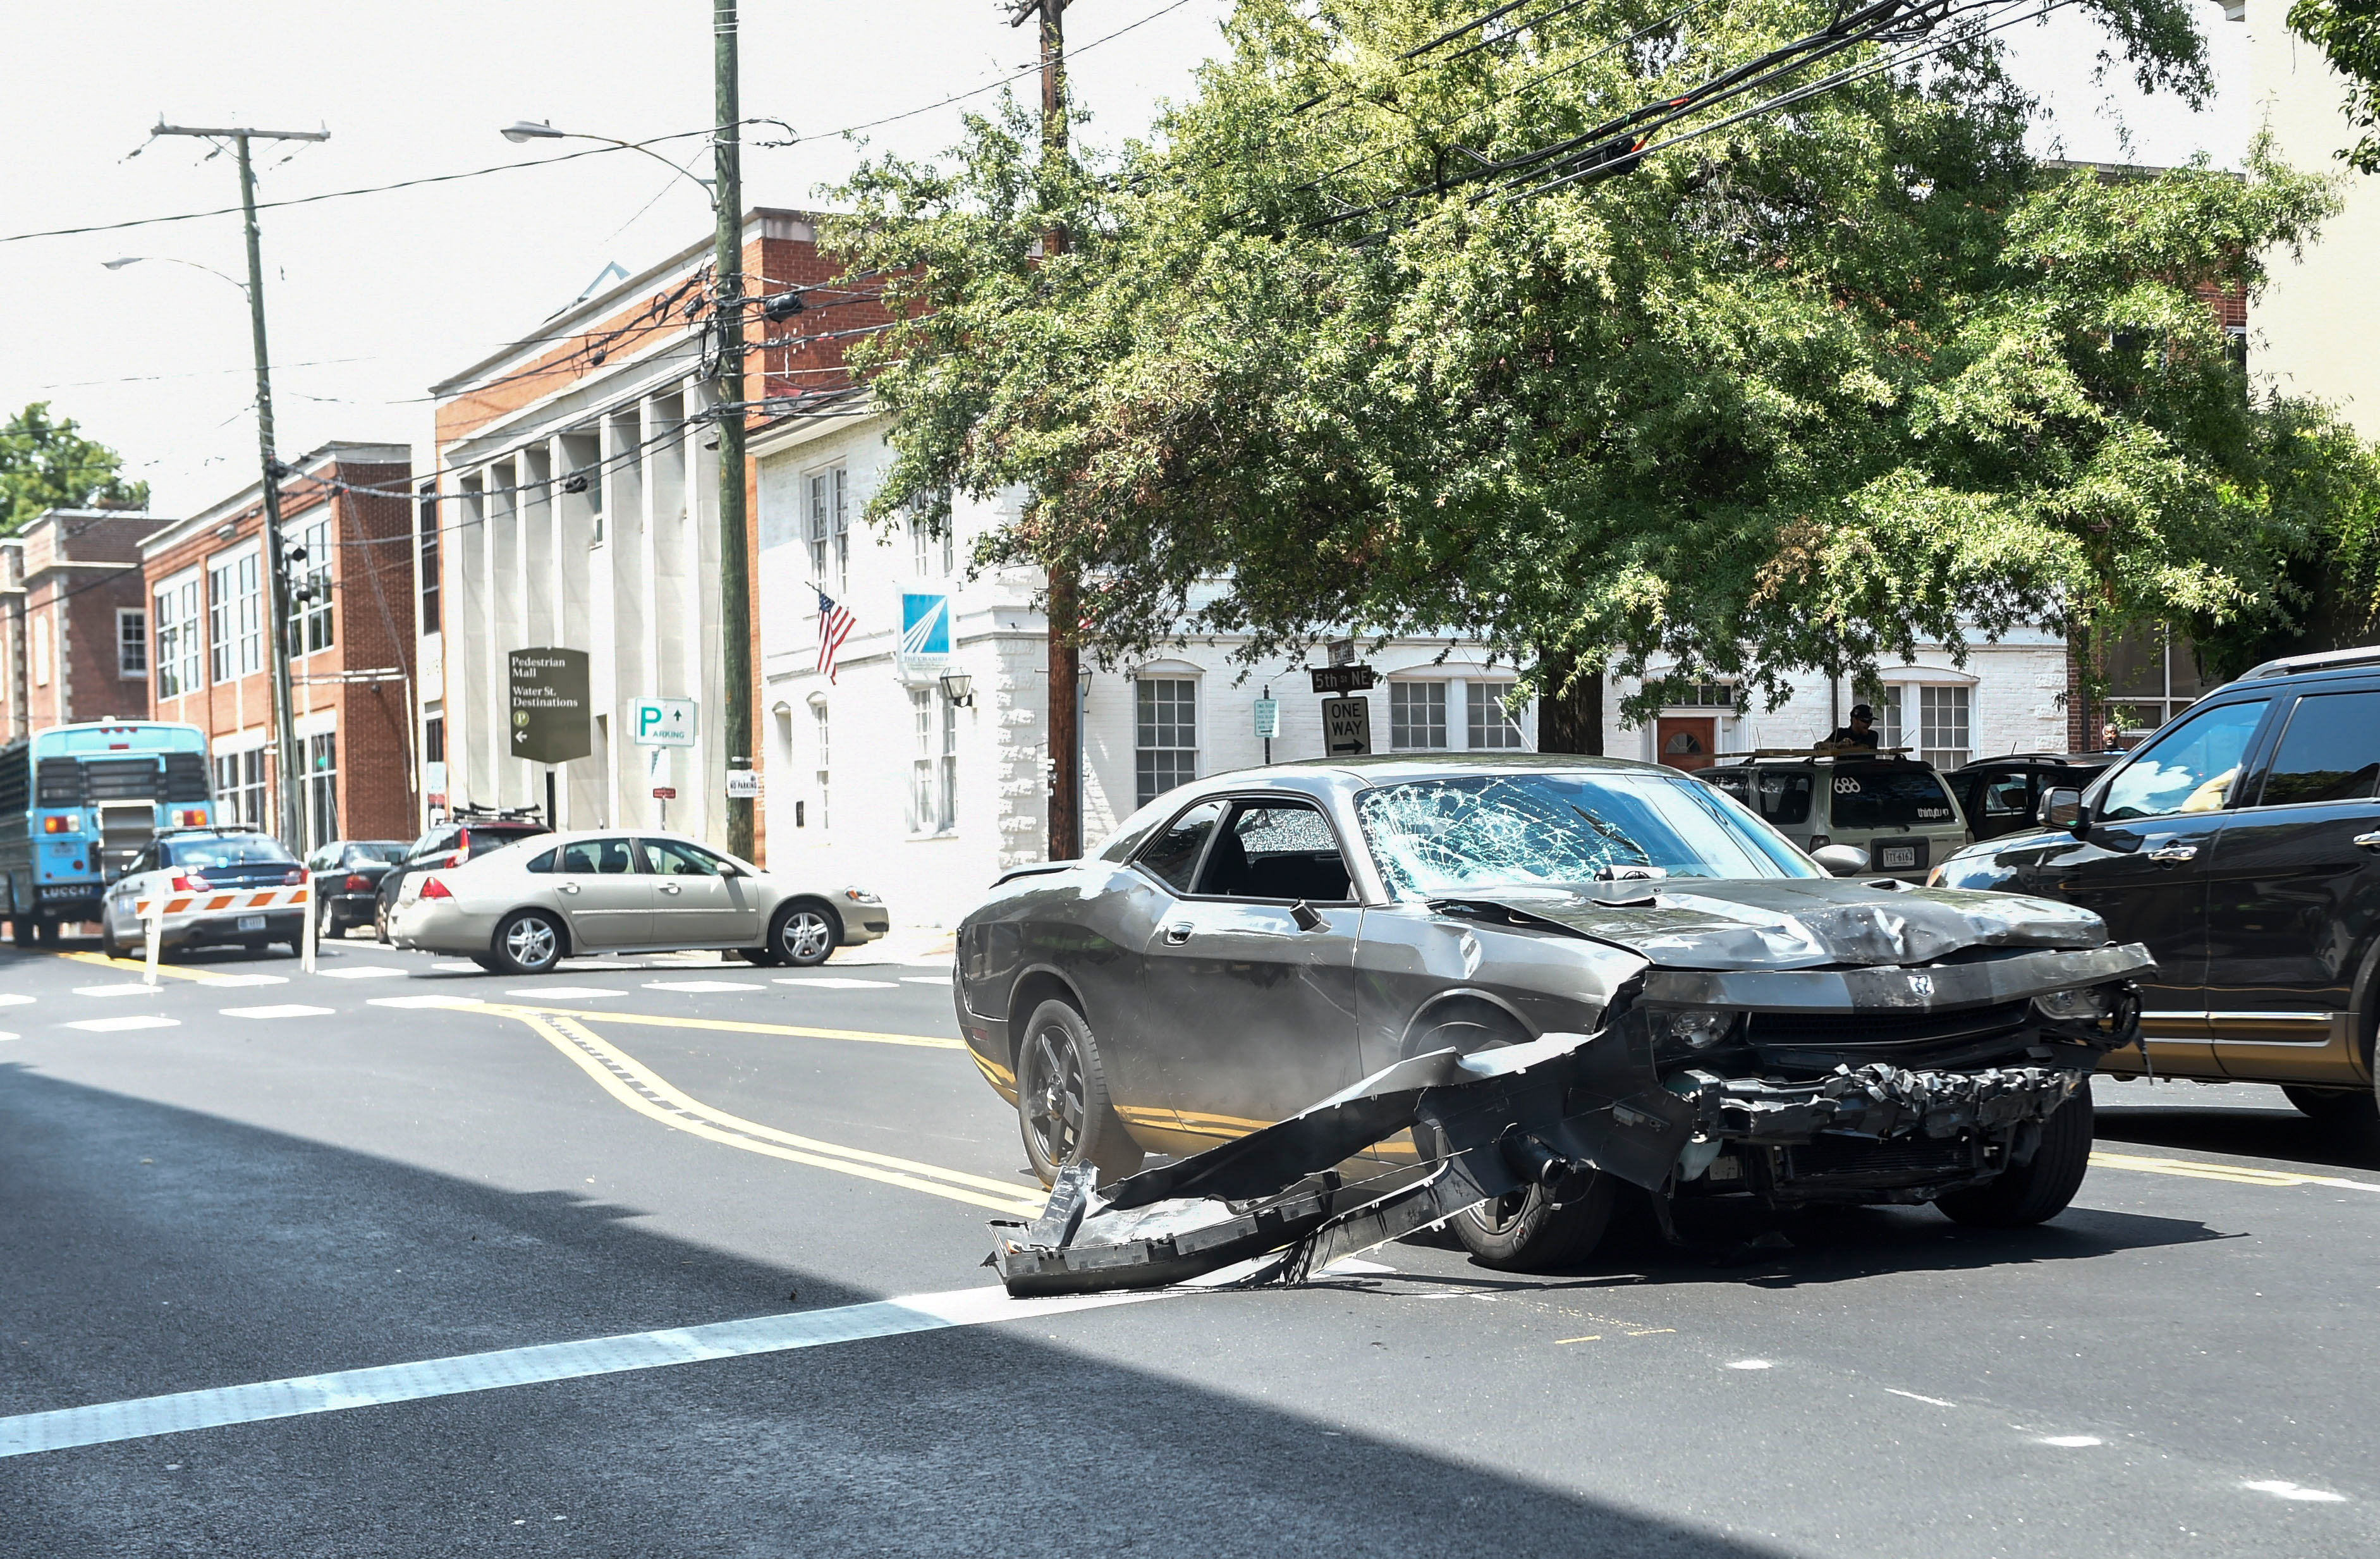 Who Was Driving The Car In Charlottesville